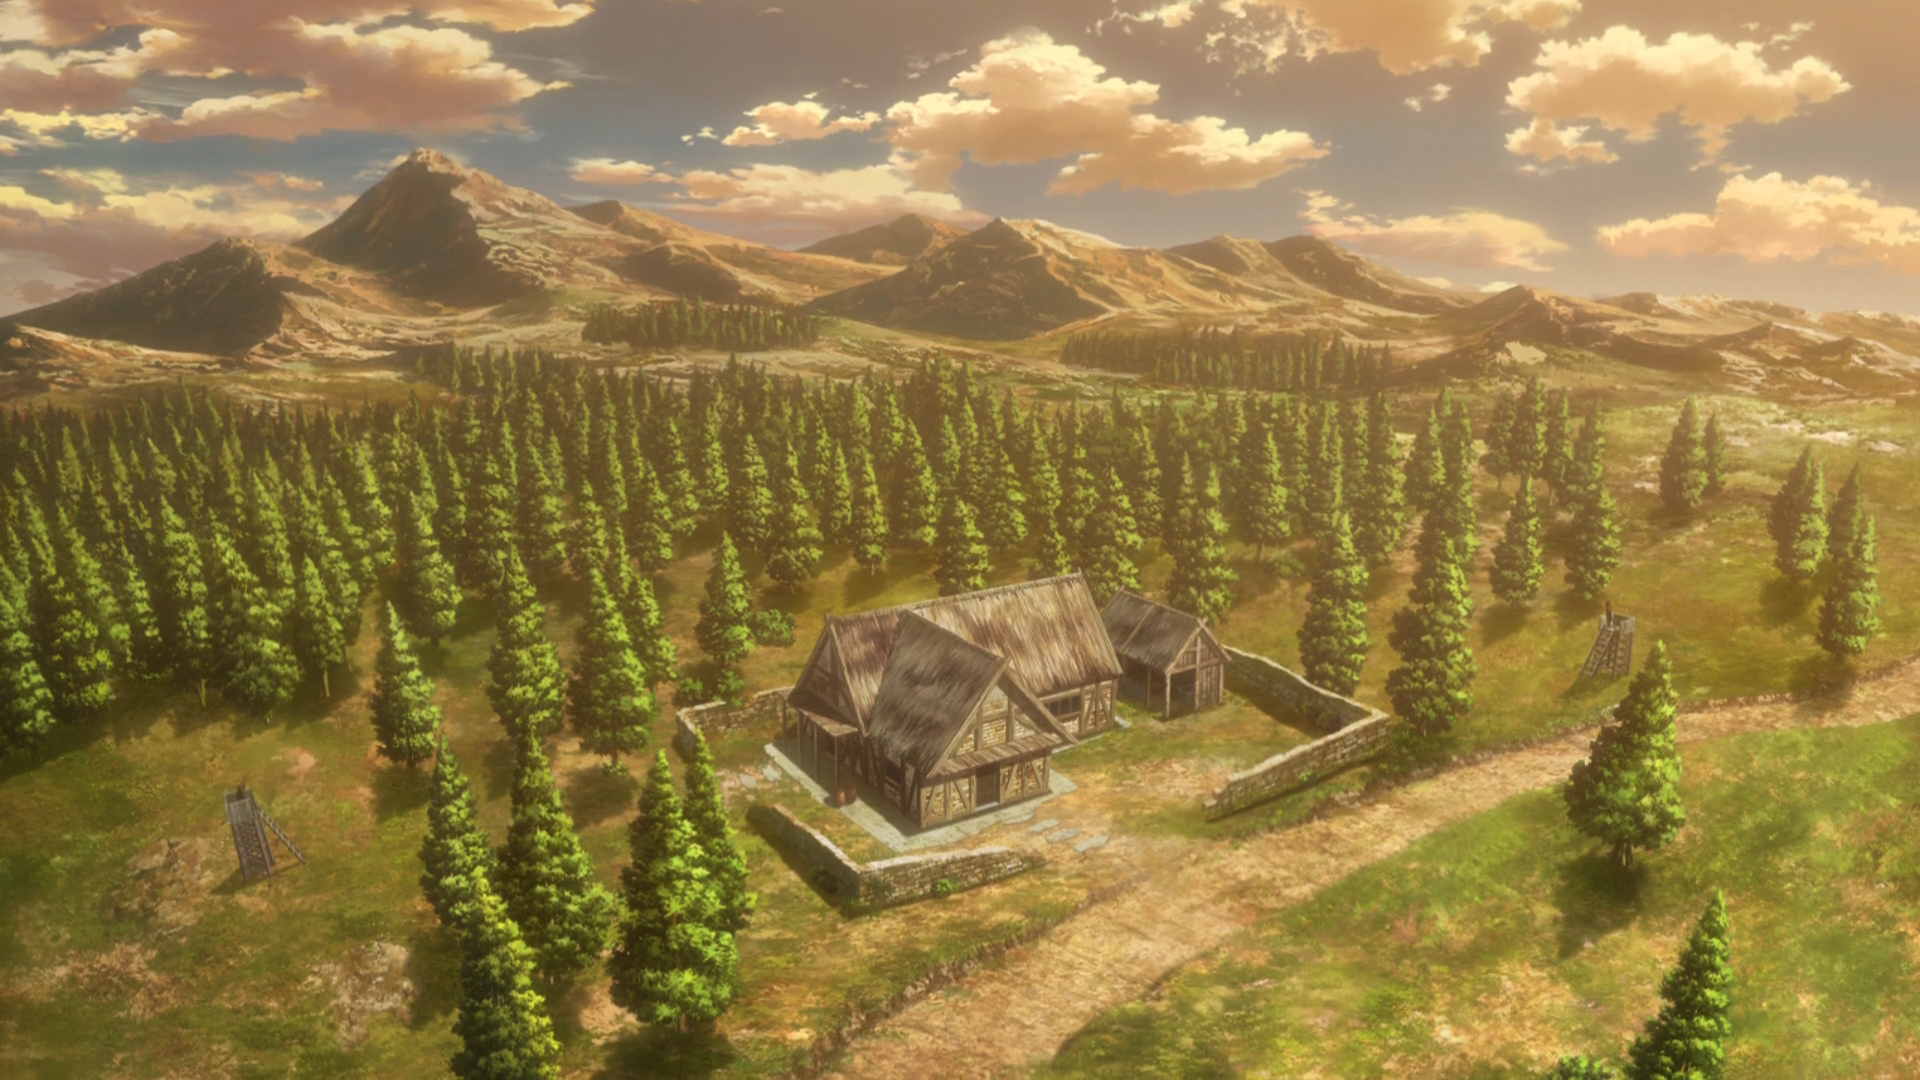 Attack On Titan Landscape Posted By Zoey Tremblay